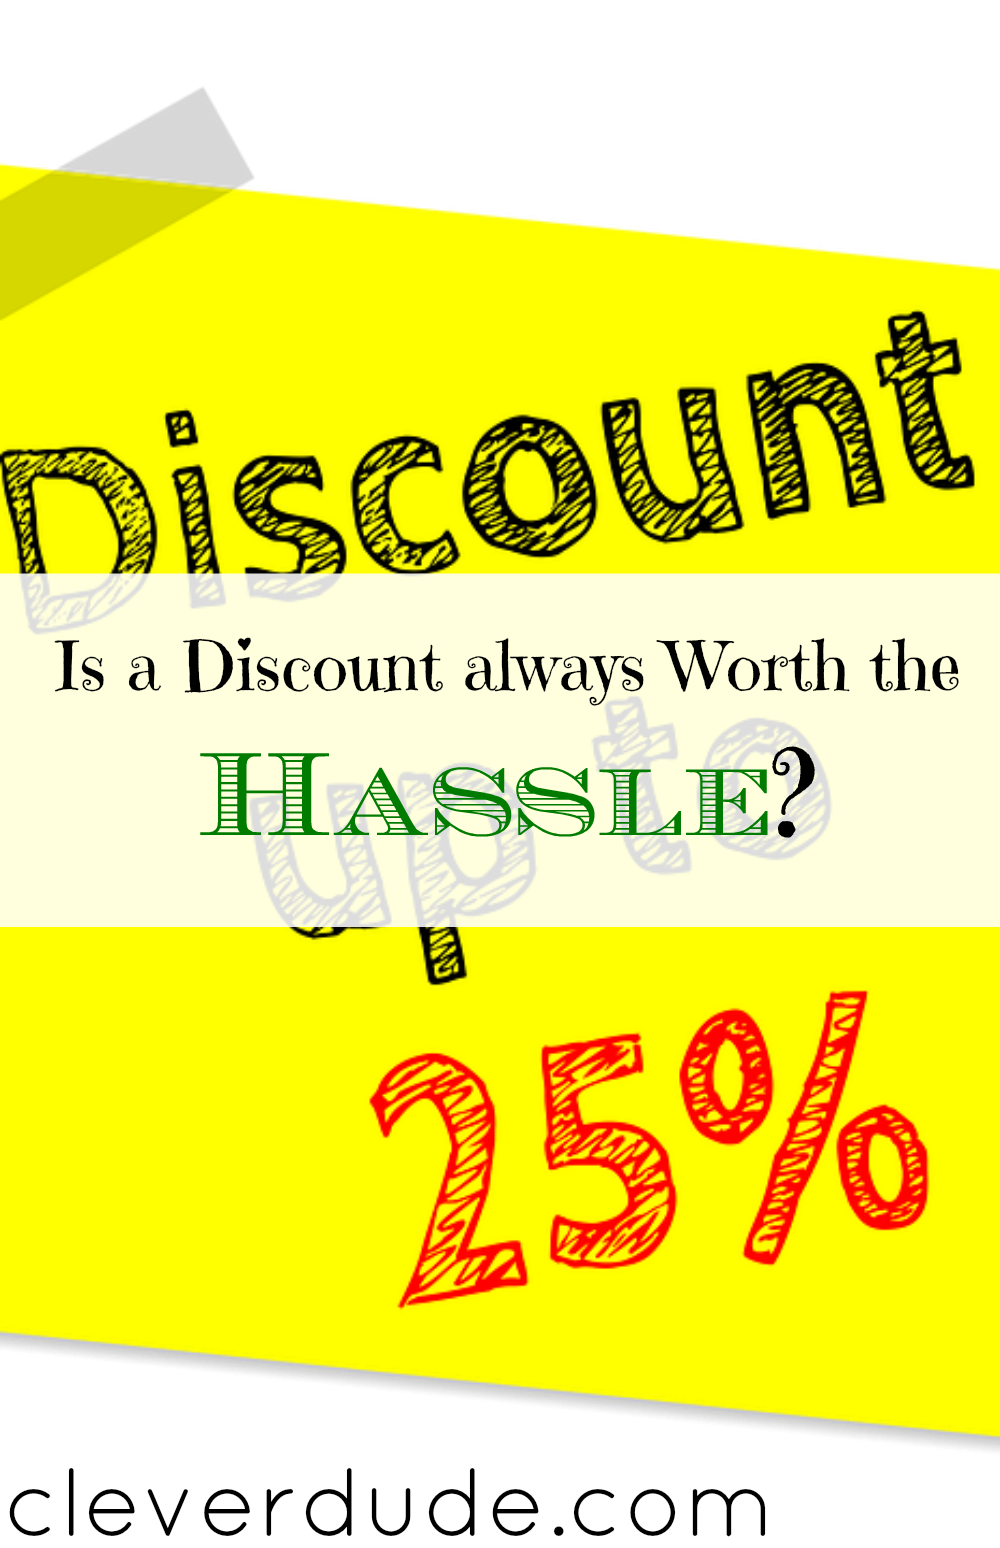 getting discounts, discount tips, discounts advice